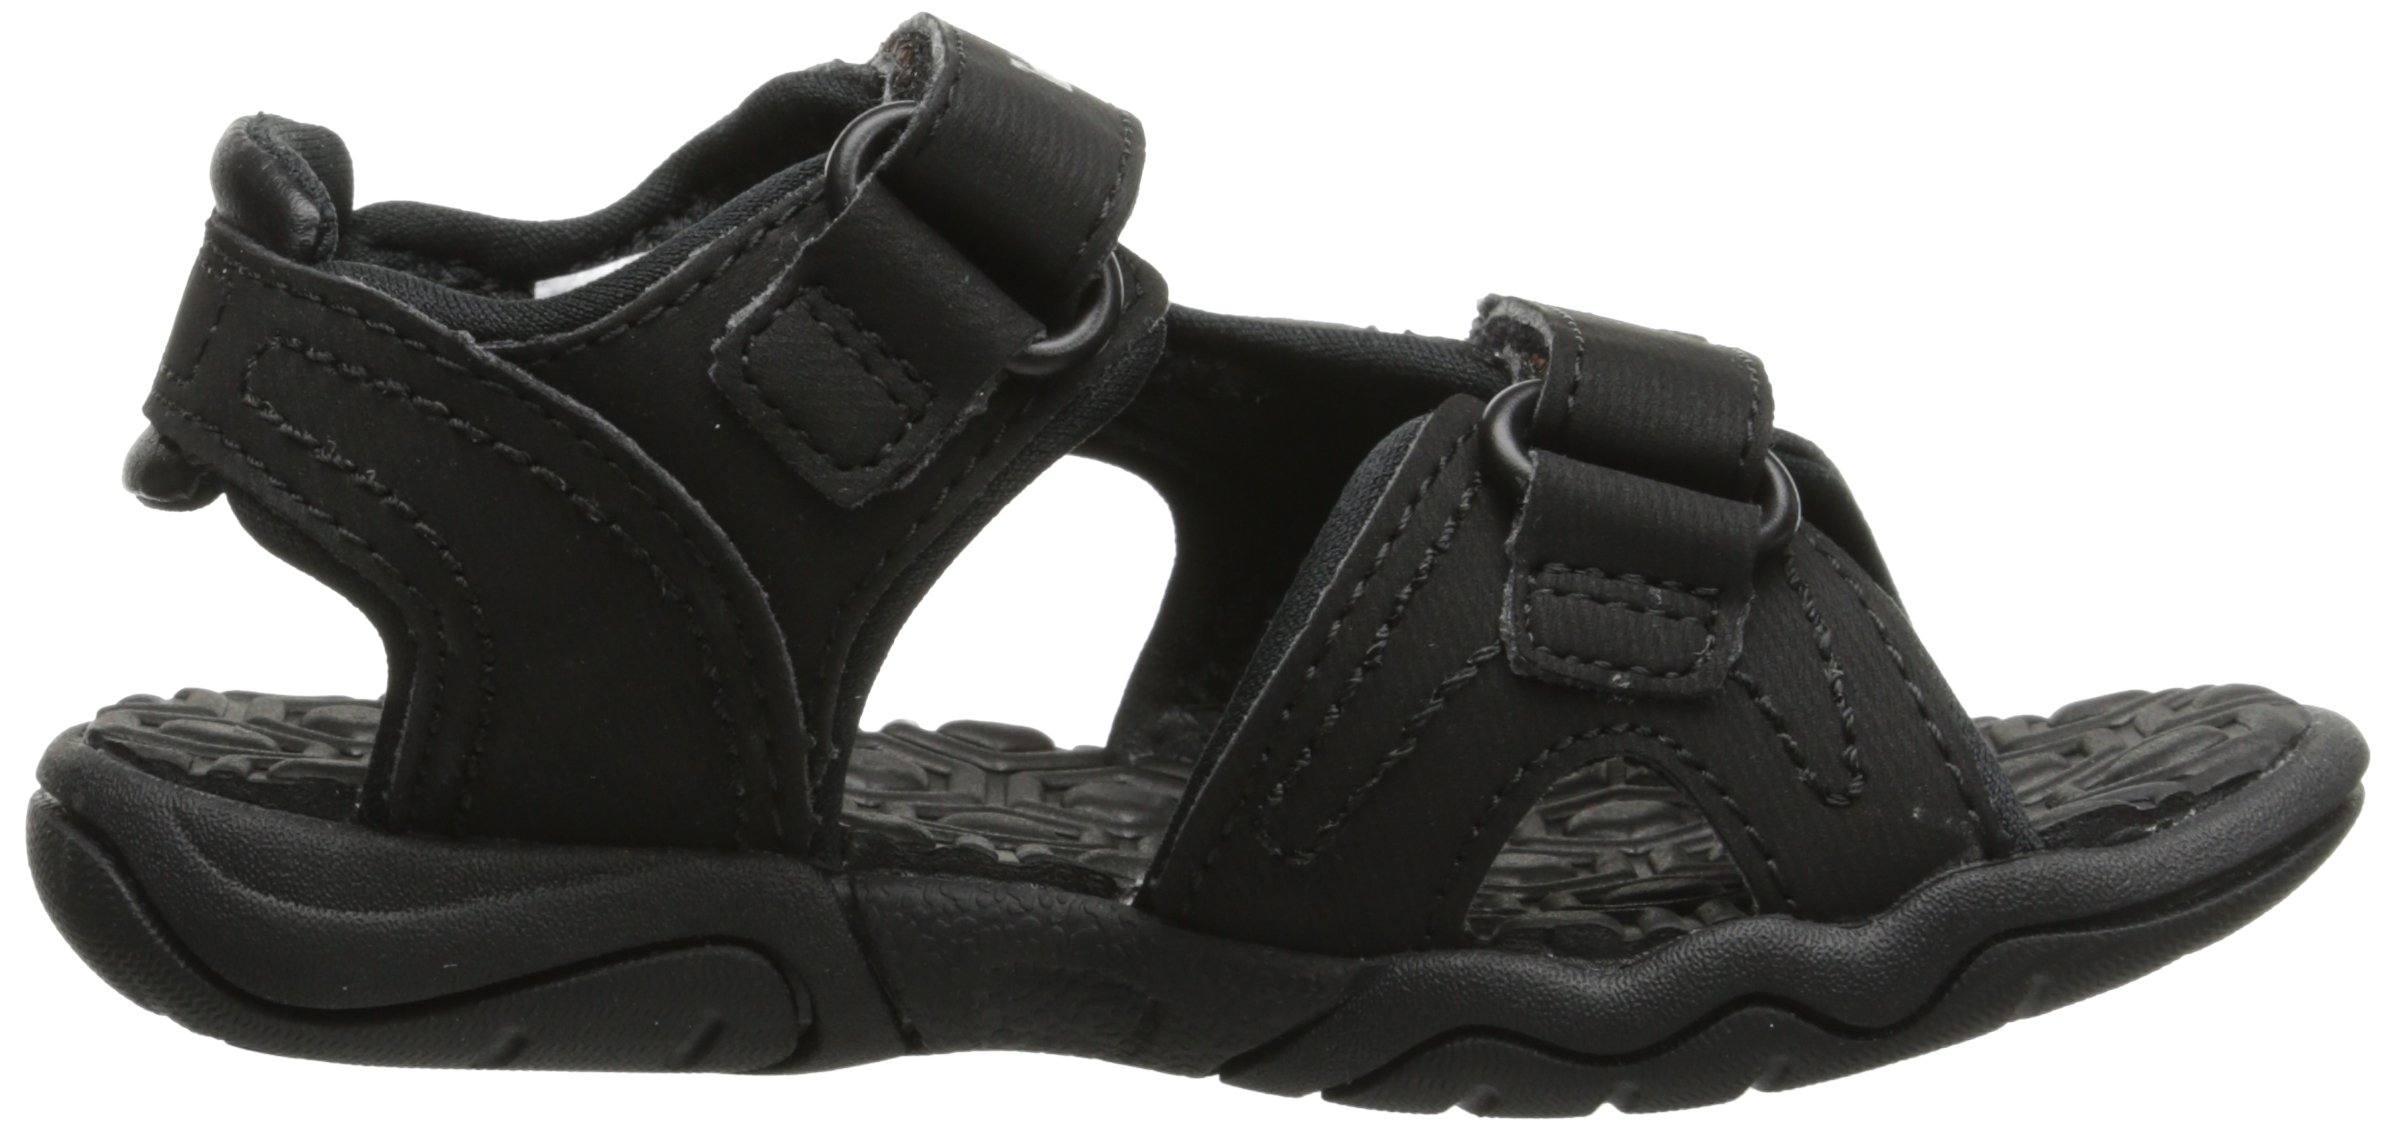 Timberland Adventure Seeker Two-Strap Sandal (Toddler/Little Kid),Blackout,9 M US Toddler by Timberland (Image #7)